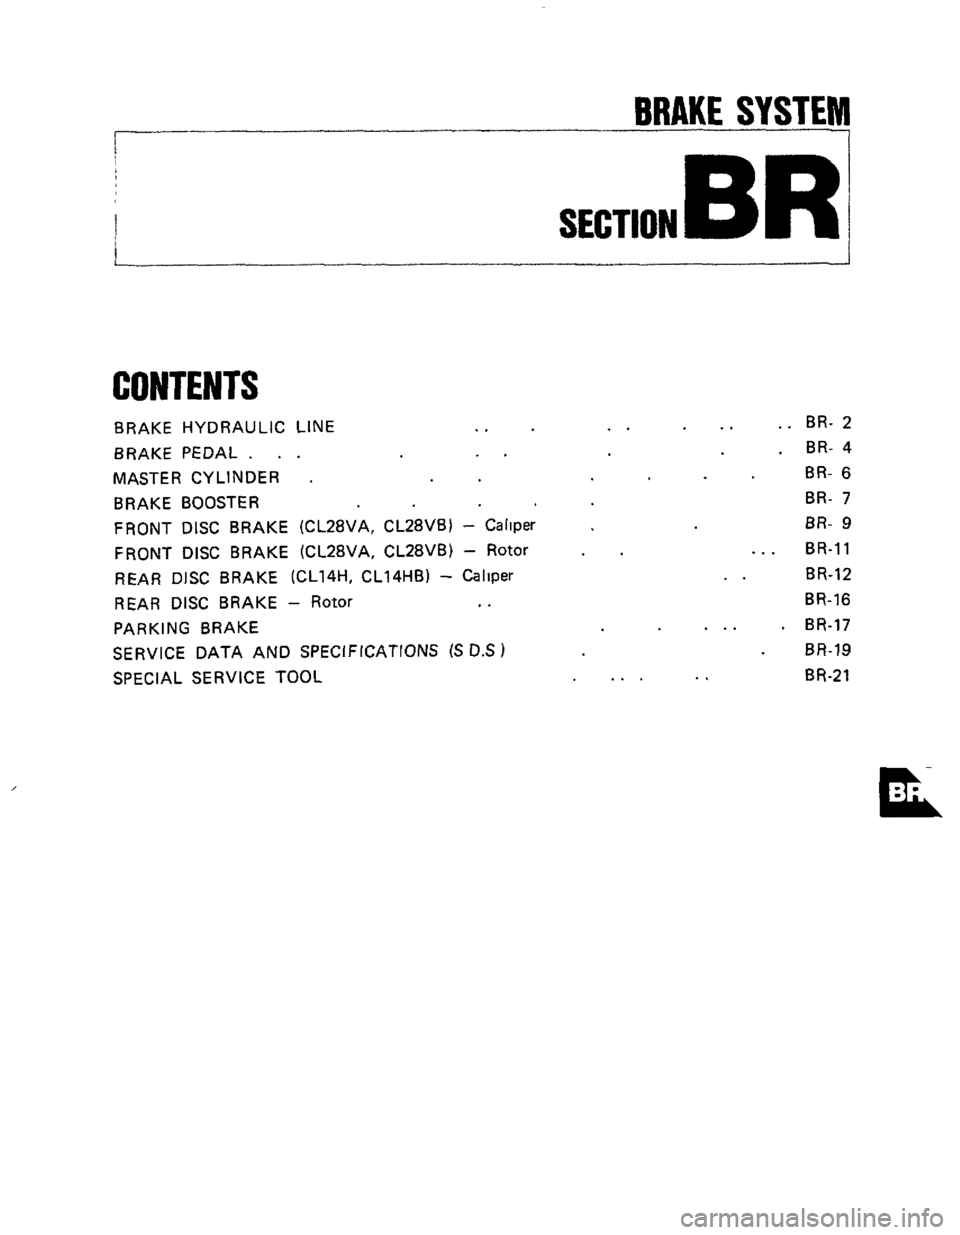 NISSAN 300ZX 1984 Z31 Brake System Workshop Manual, Page 1